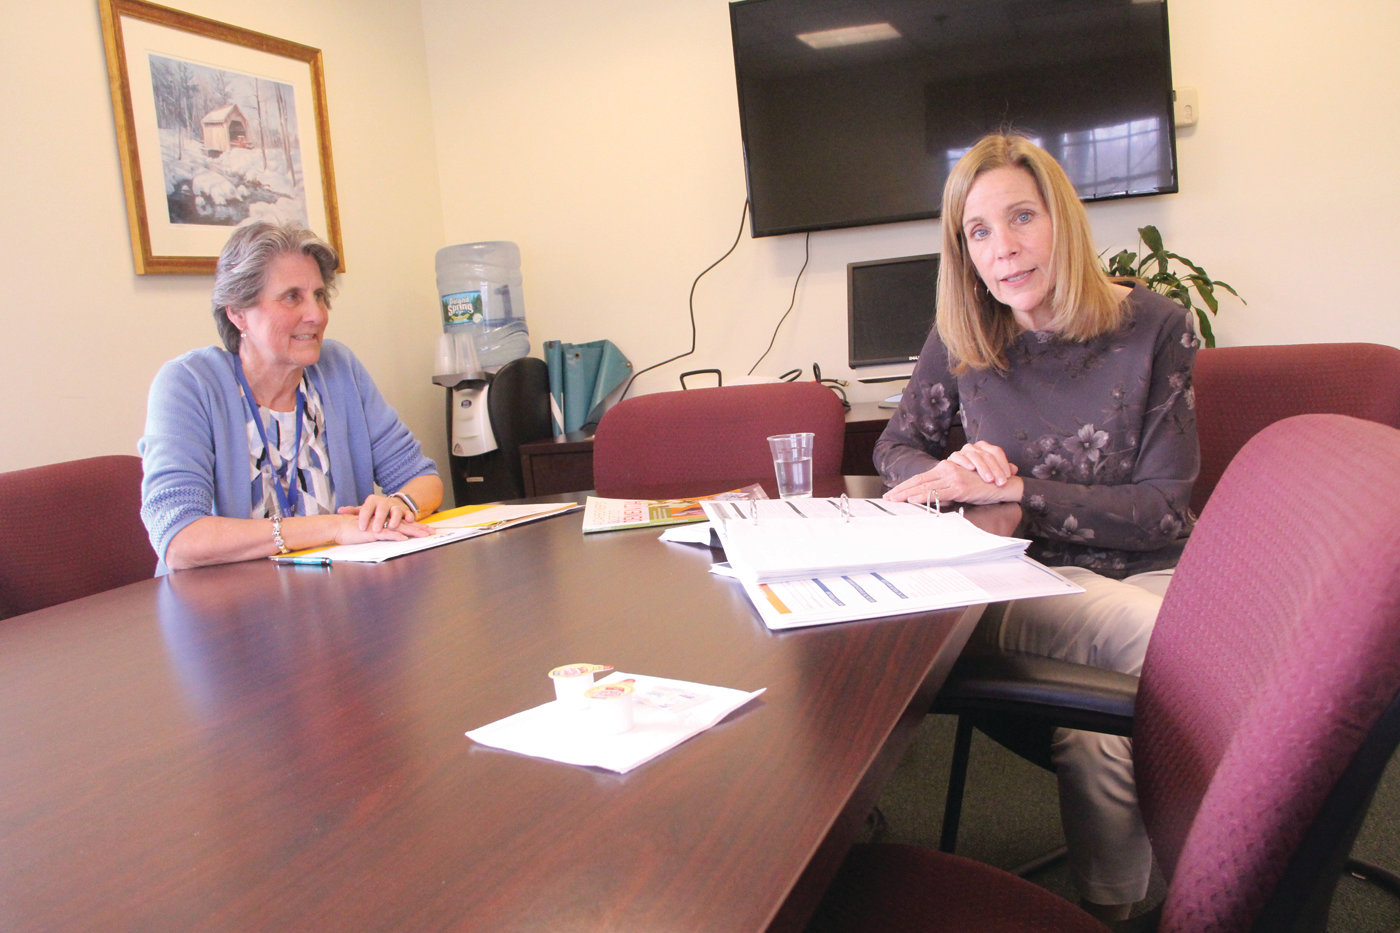 HELPING CAREGIVERS: Kim Morris and Dottie Santagata of Cornerstone Adult Services review procedures of the nationwide Improving Outcomes for Families and Older Adults: Adult Day Service Plus (ADS Plus) research study the center is participating in.